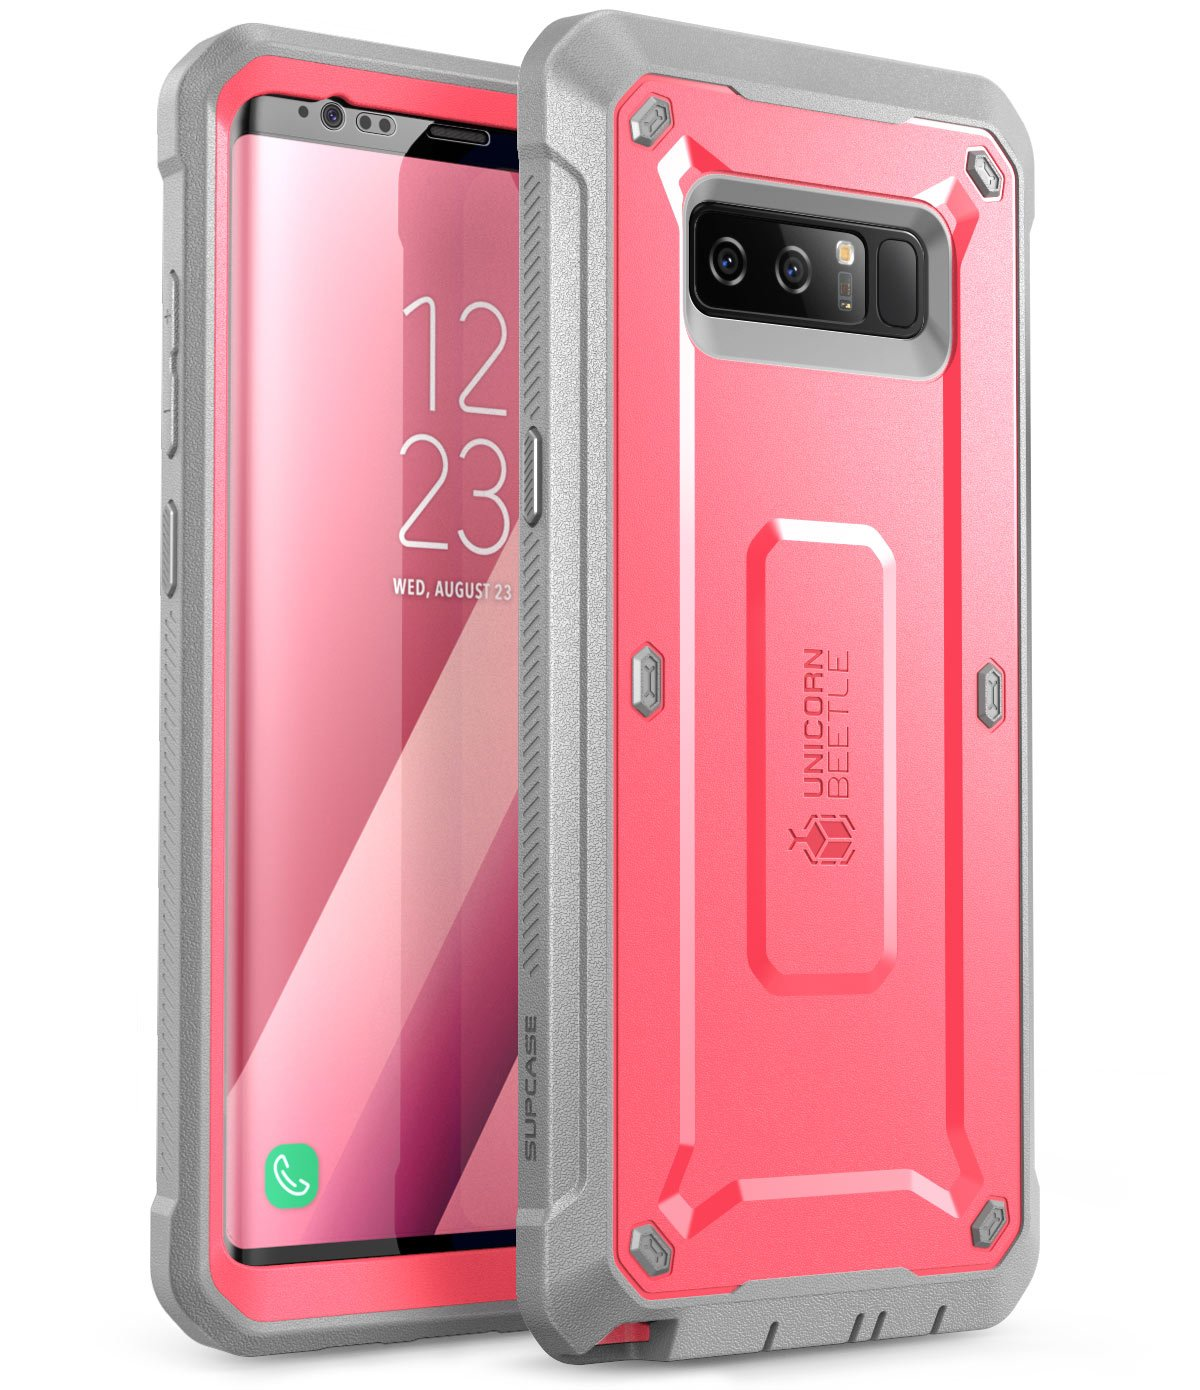 SUPCASE Unicorn Beetle Shield Series Case Designed for Galaxy Note 8, with Built-in Screen Protector Full-Body Rugged Holster Case for Galaxy Note 8 (2017 Release) (Pink)